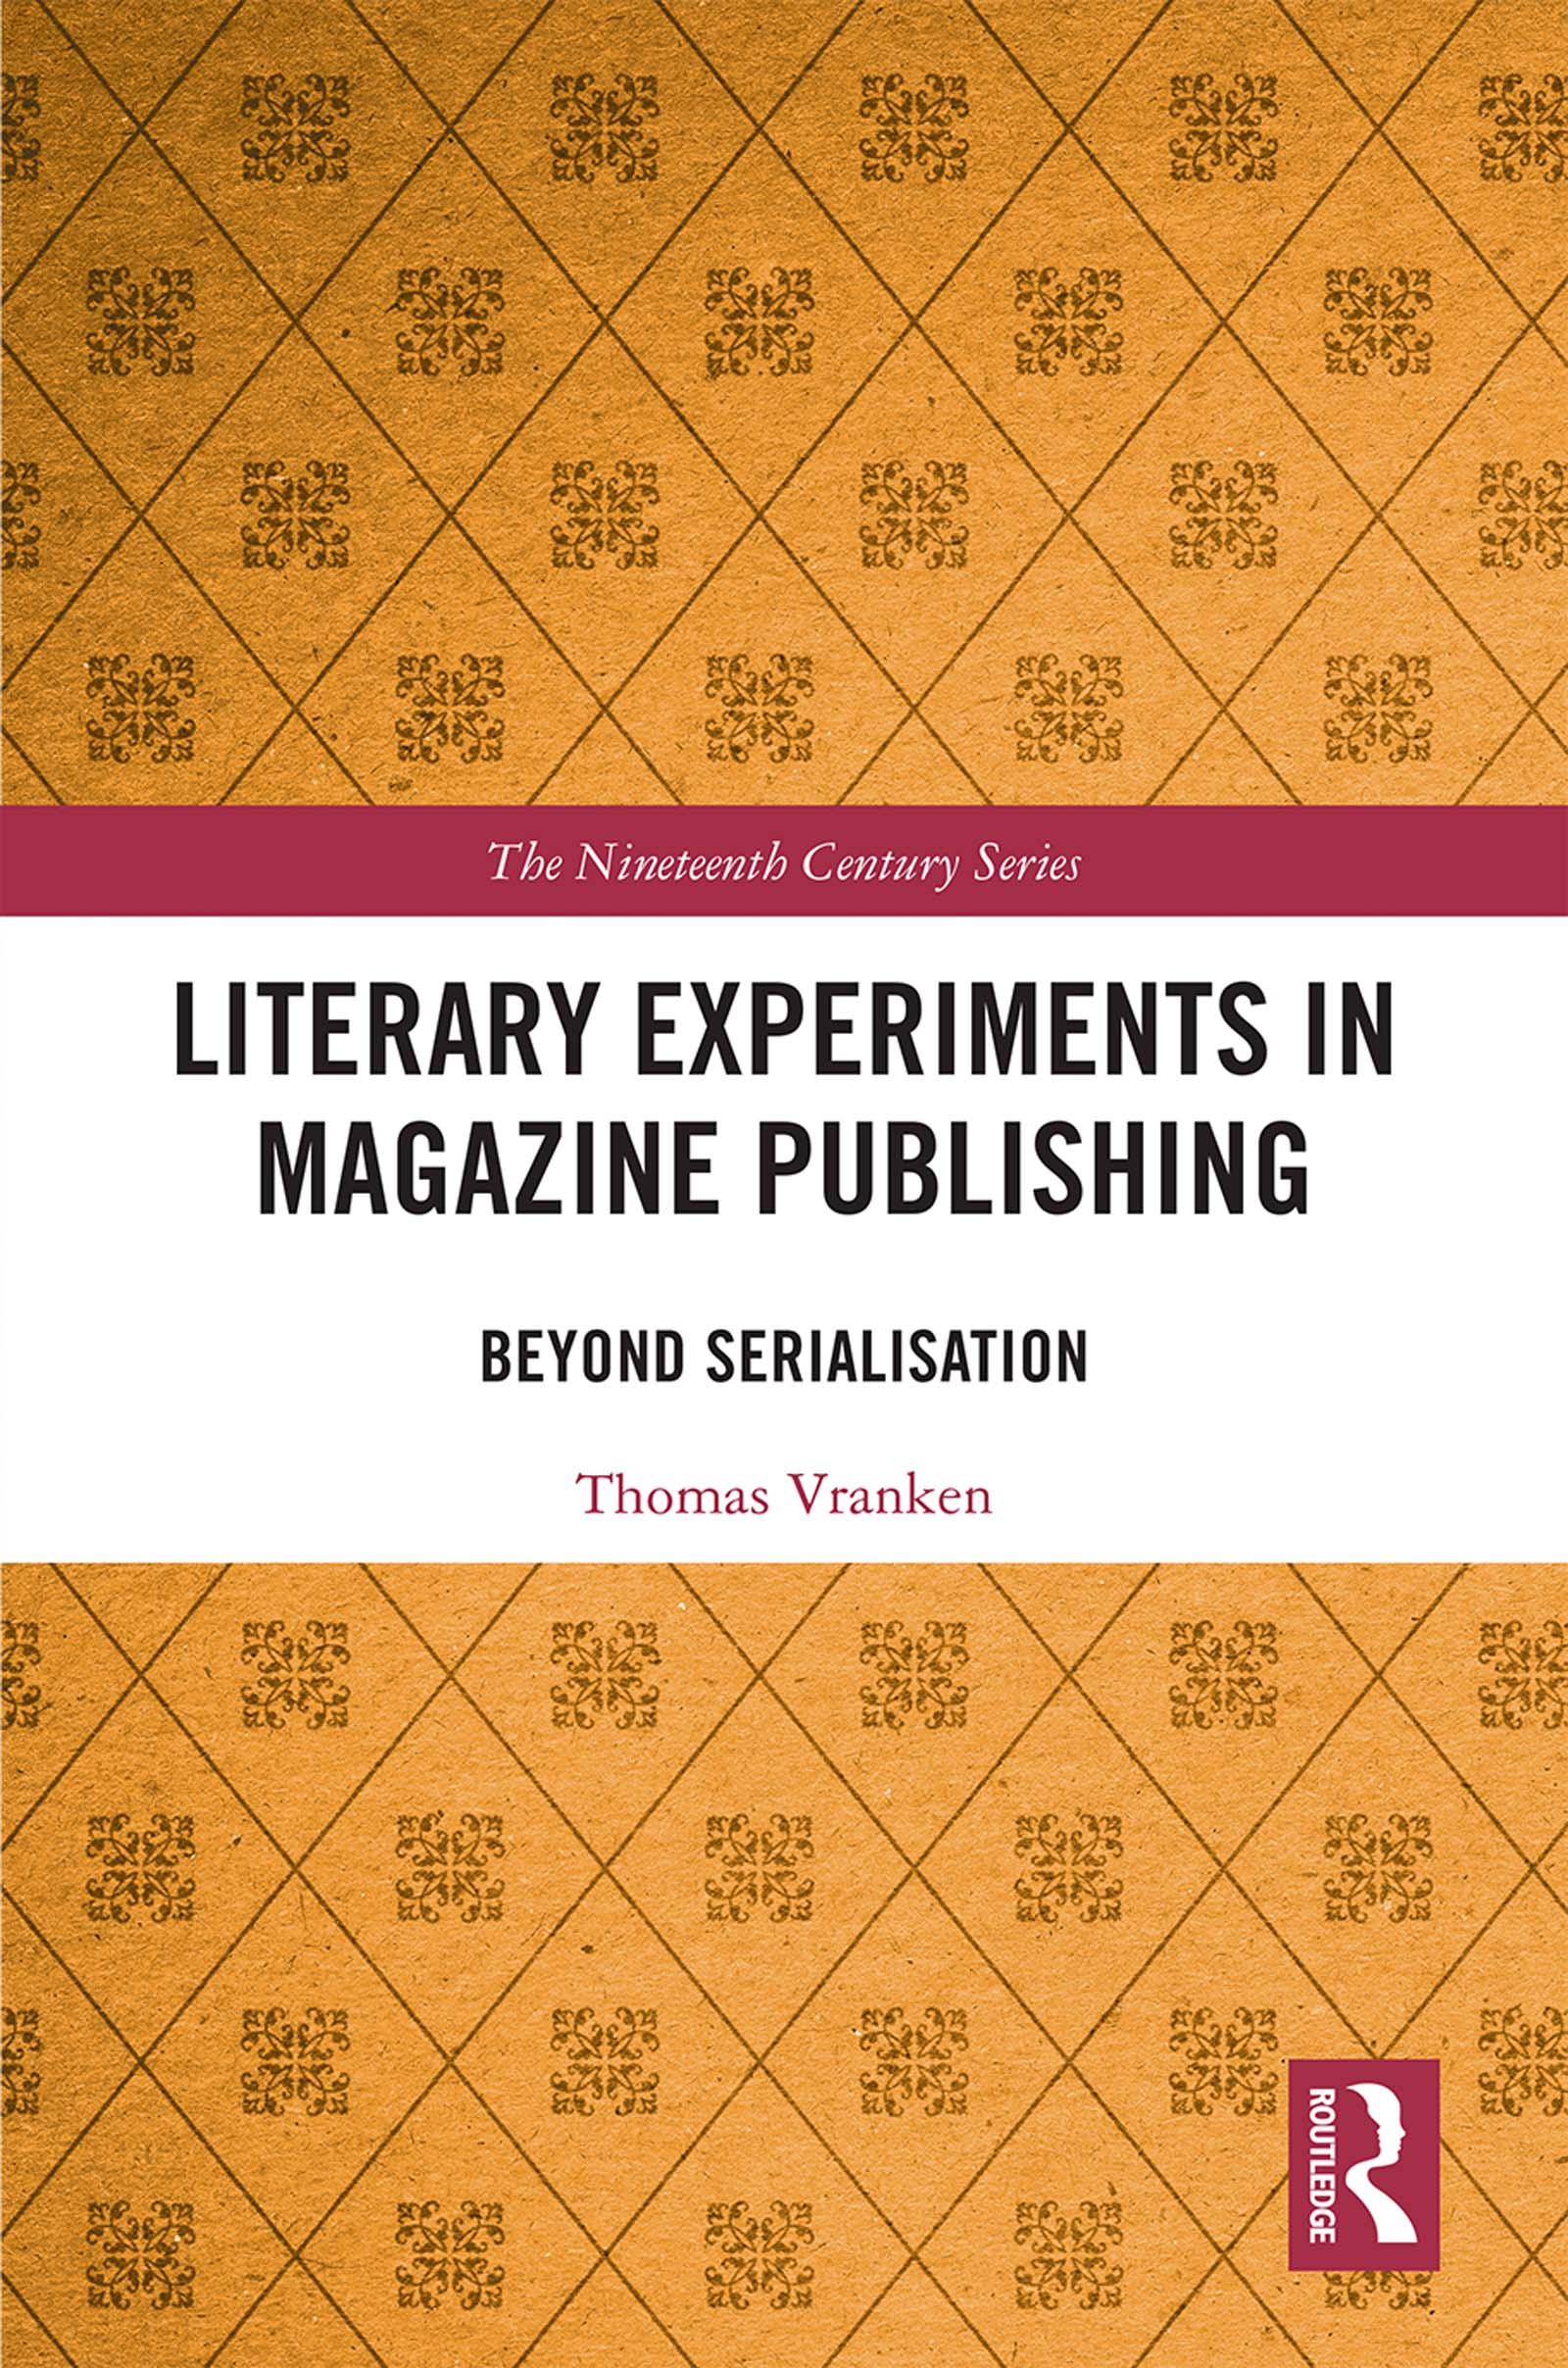 Literary Experiments in Magazine Publishing: Beyond Serialization book cover